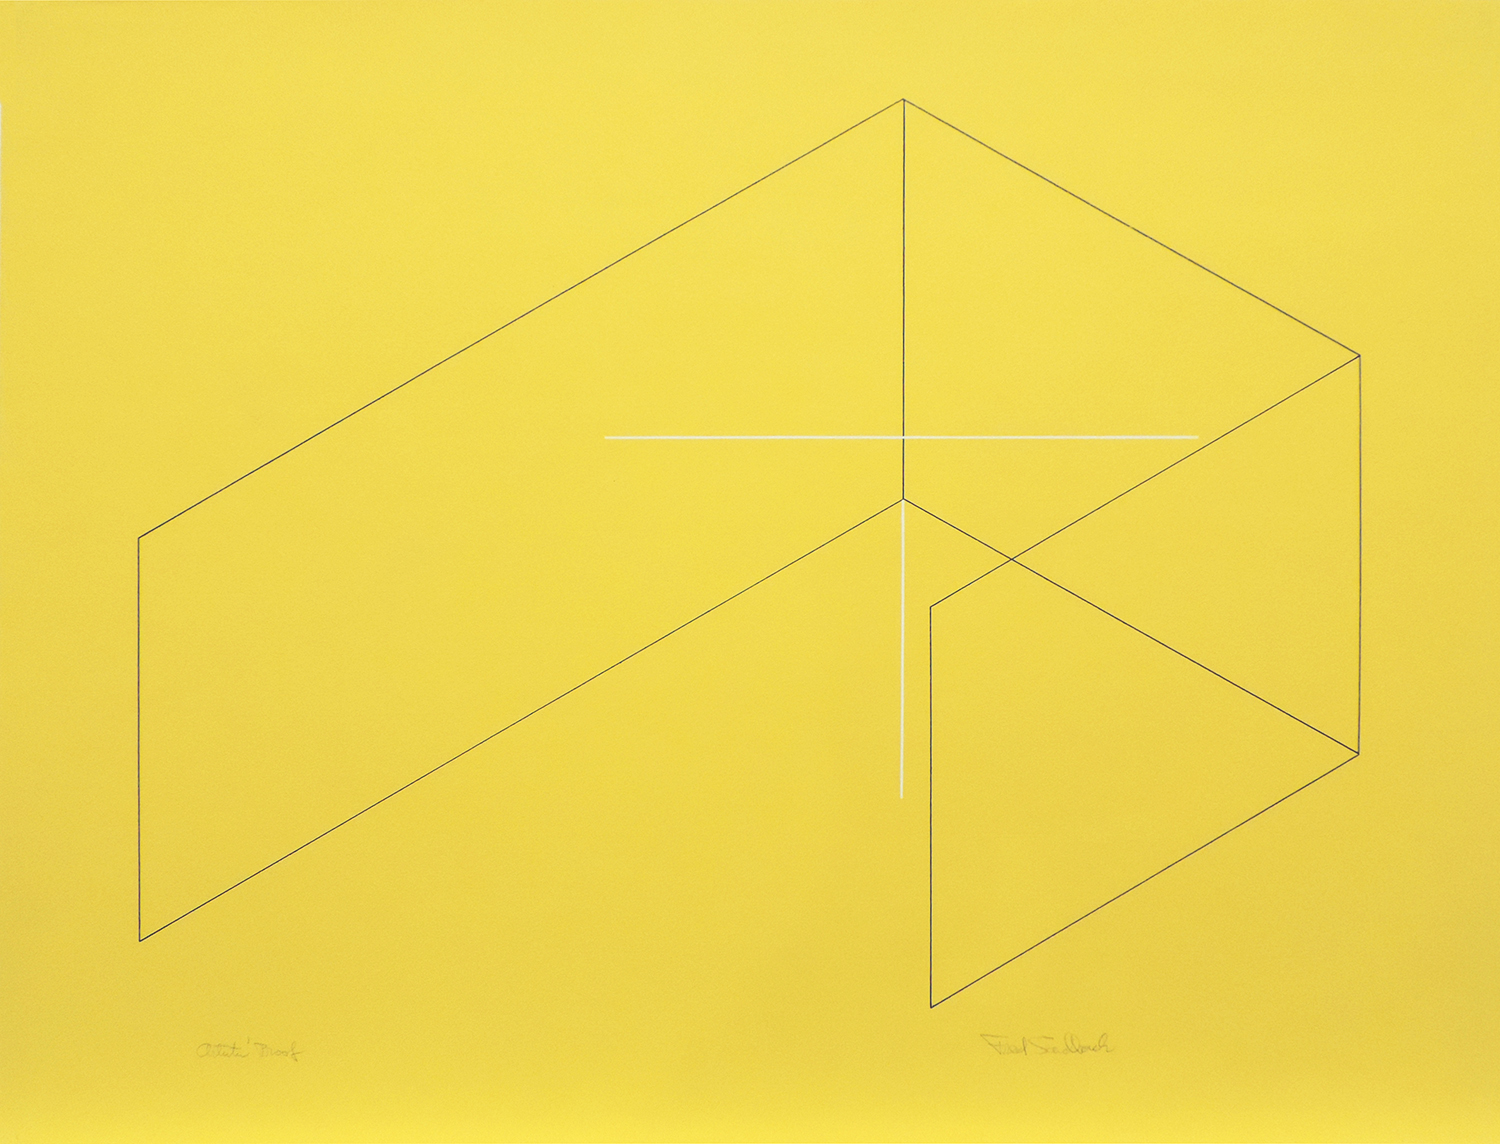 Untitled|silk screenprint on yellow wove paper with cut edge|50.2 x 65.1 cm|1970